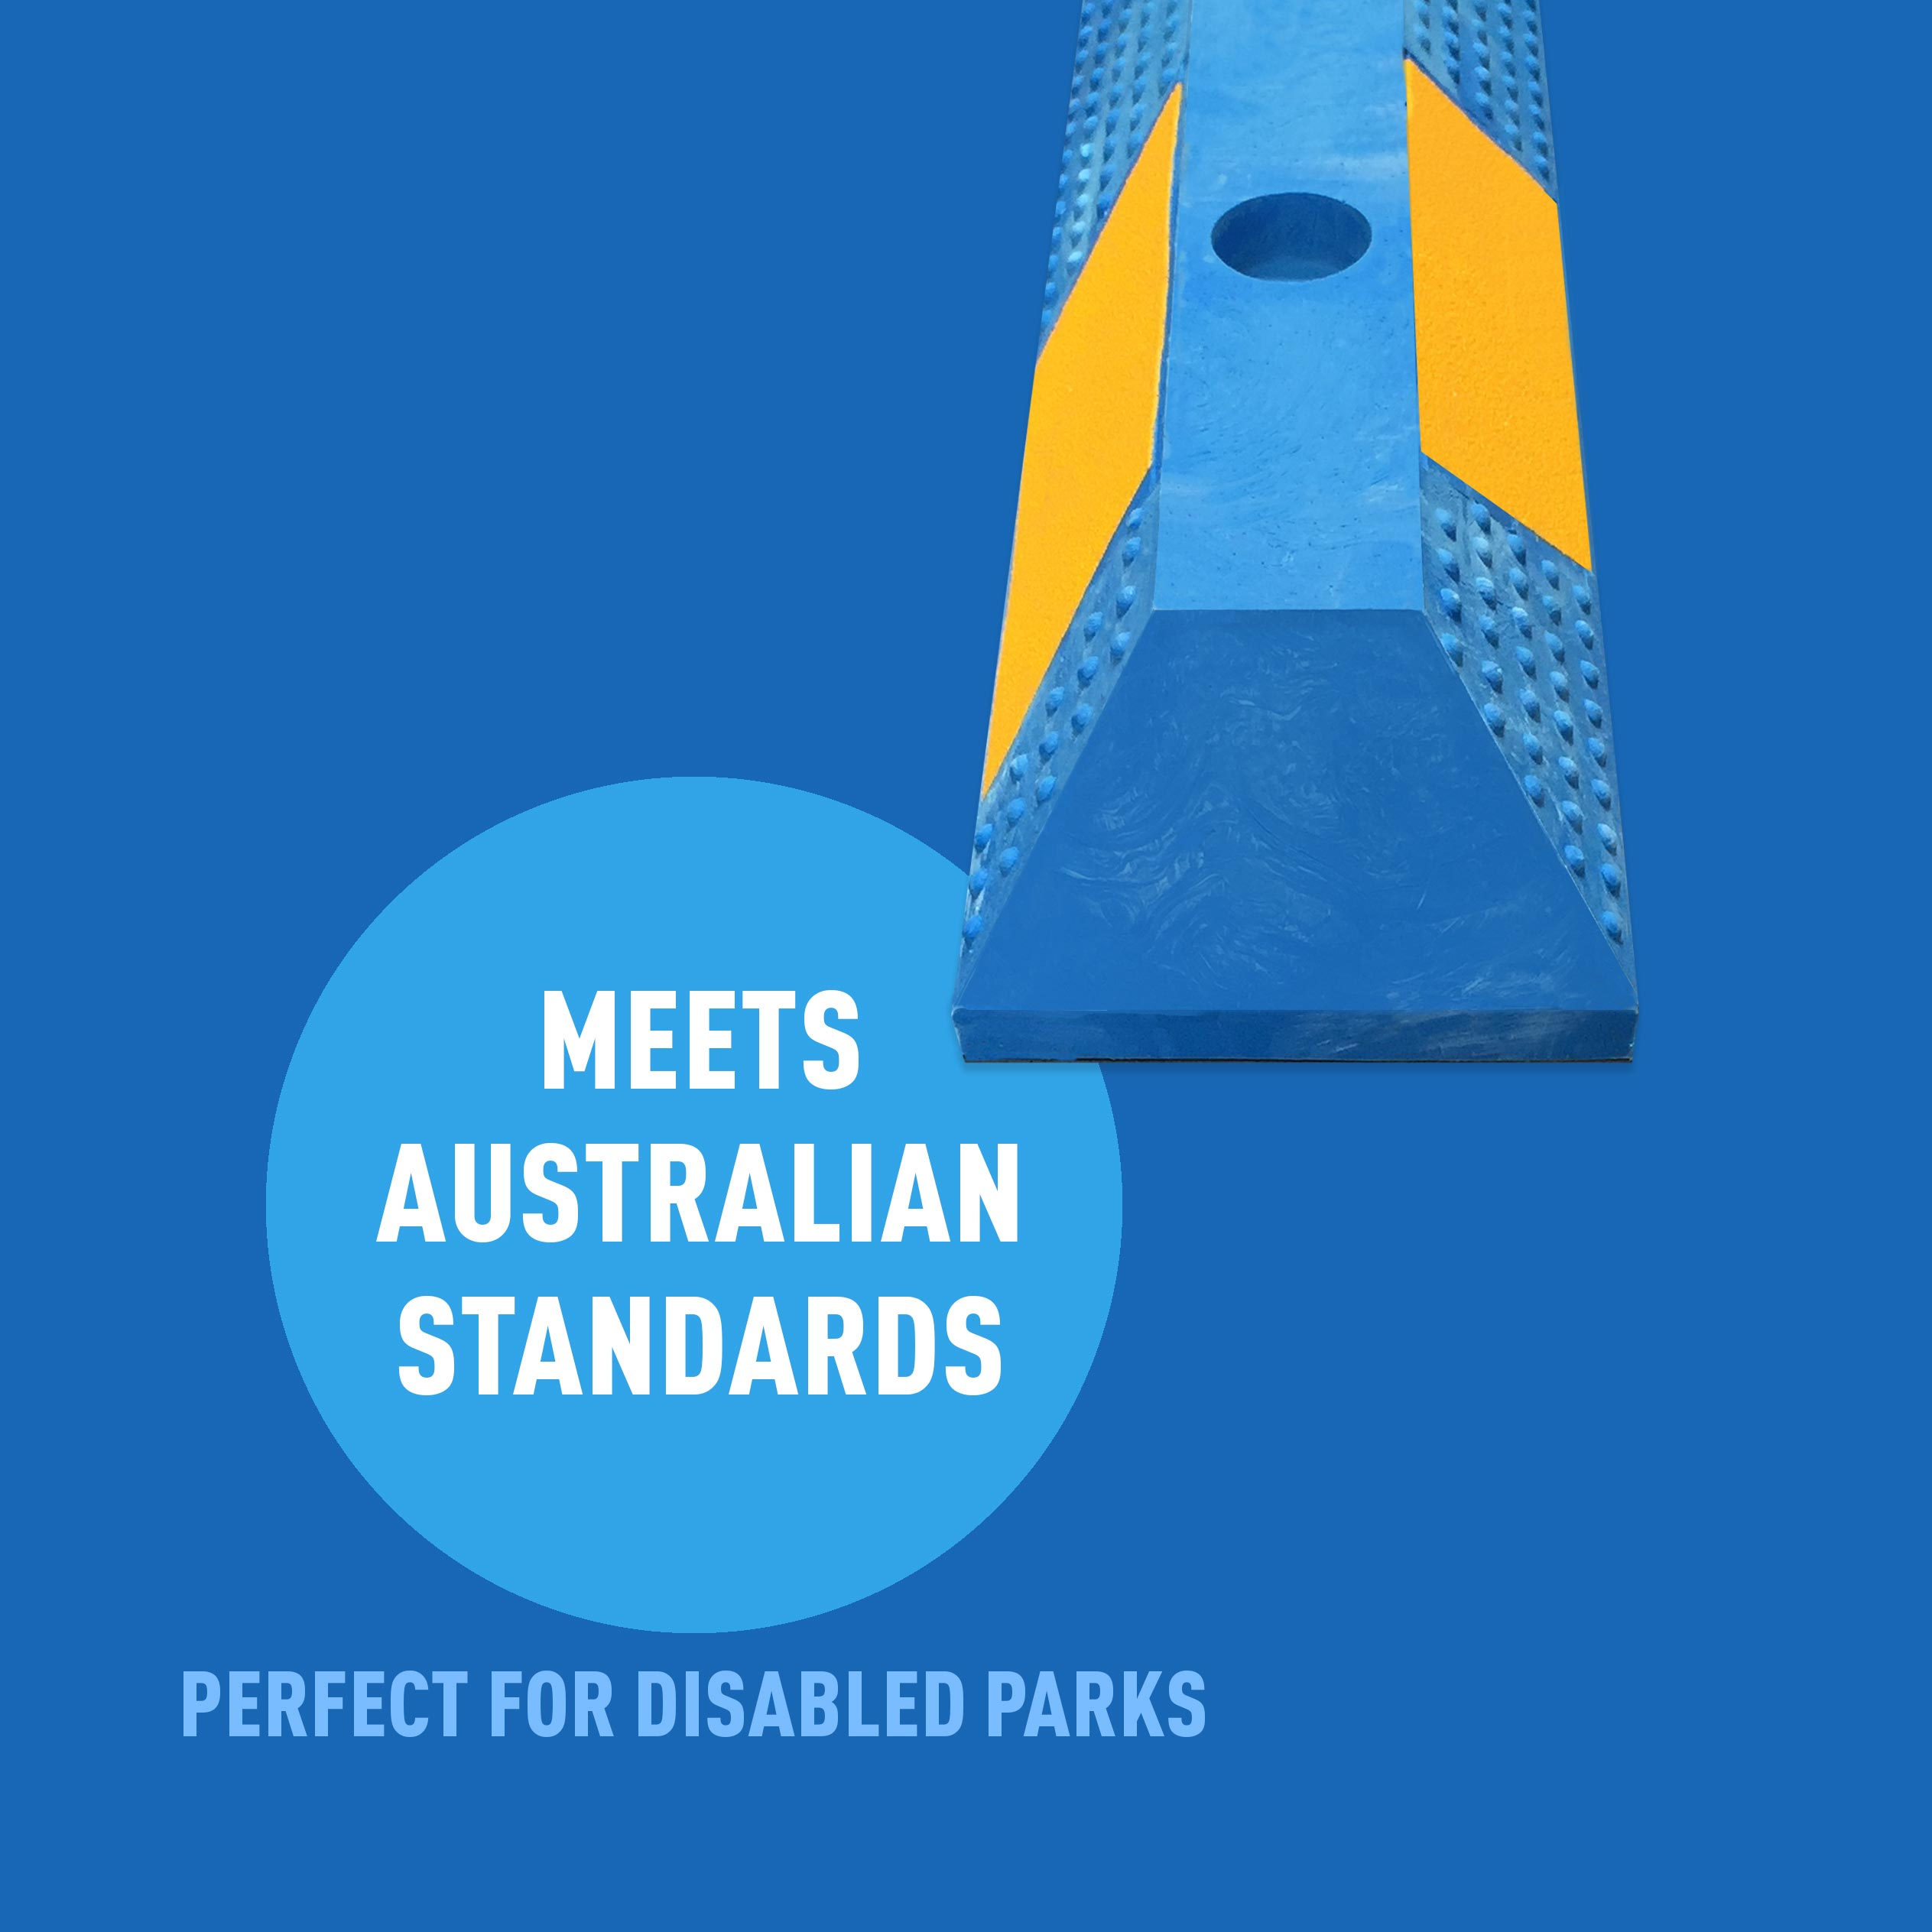 Blue Rubber Wheel Stops - Meets Australian Standards